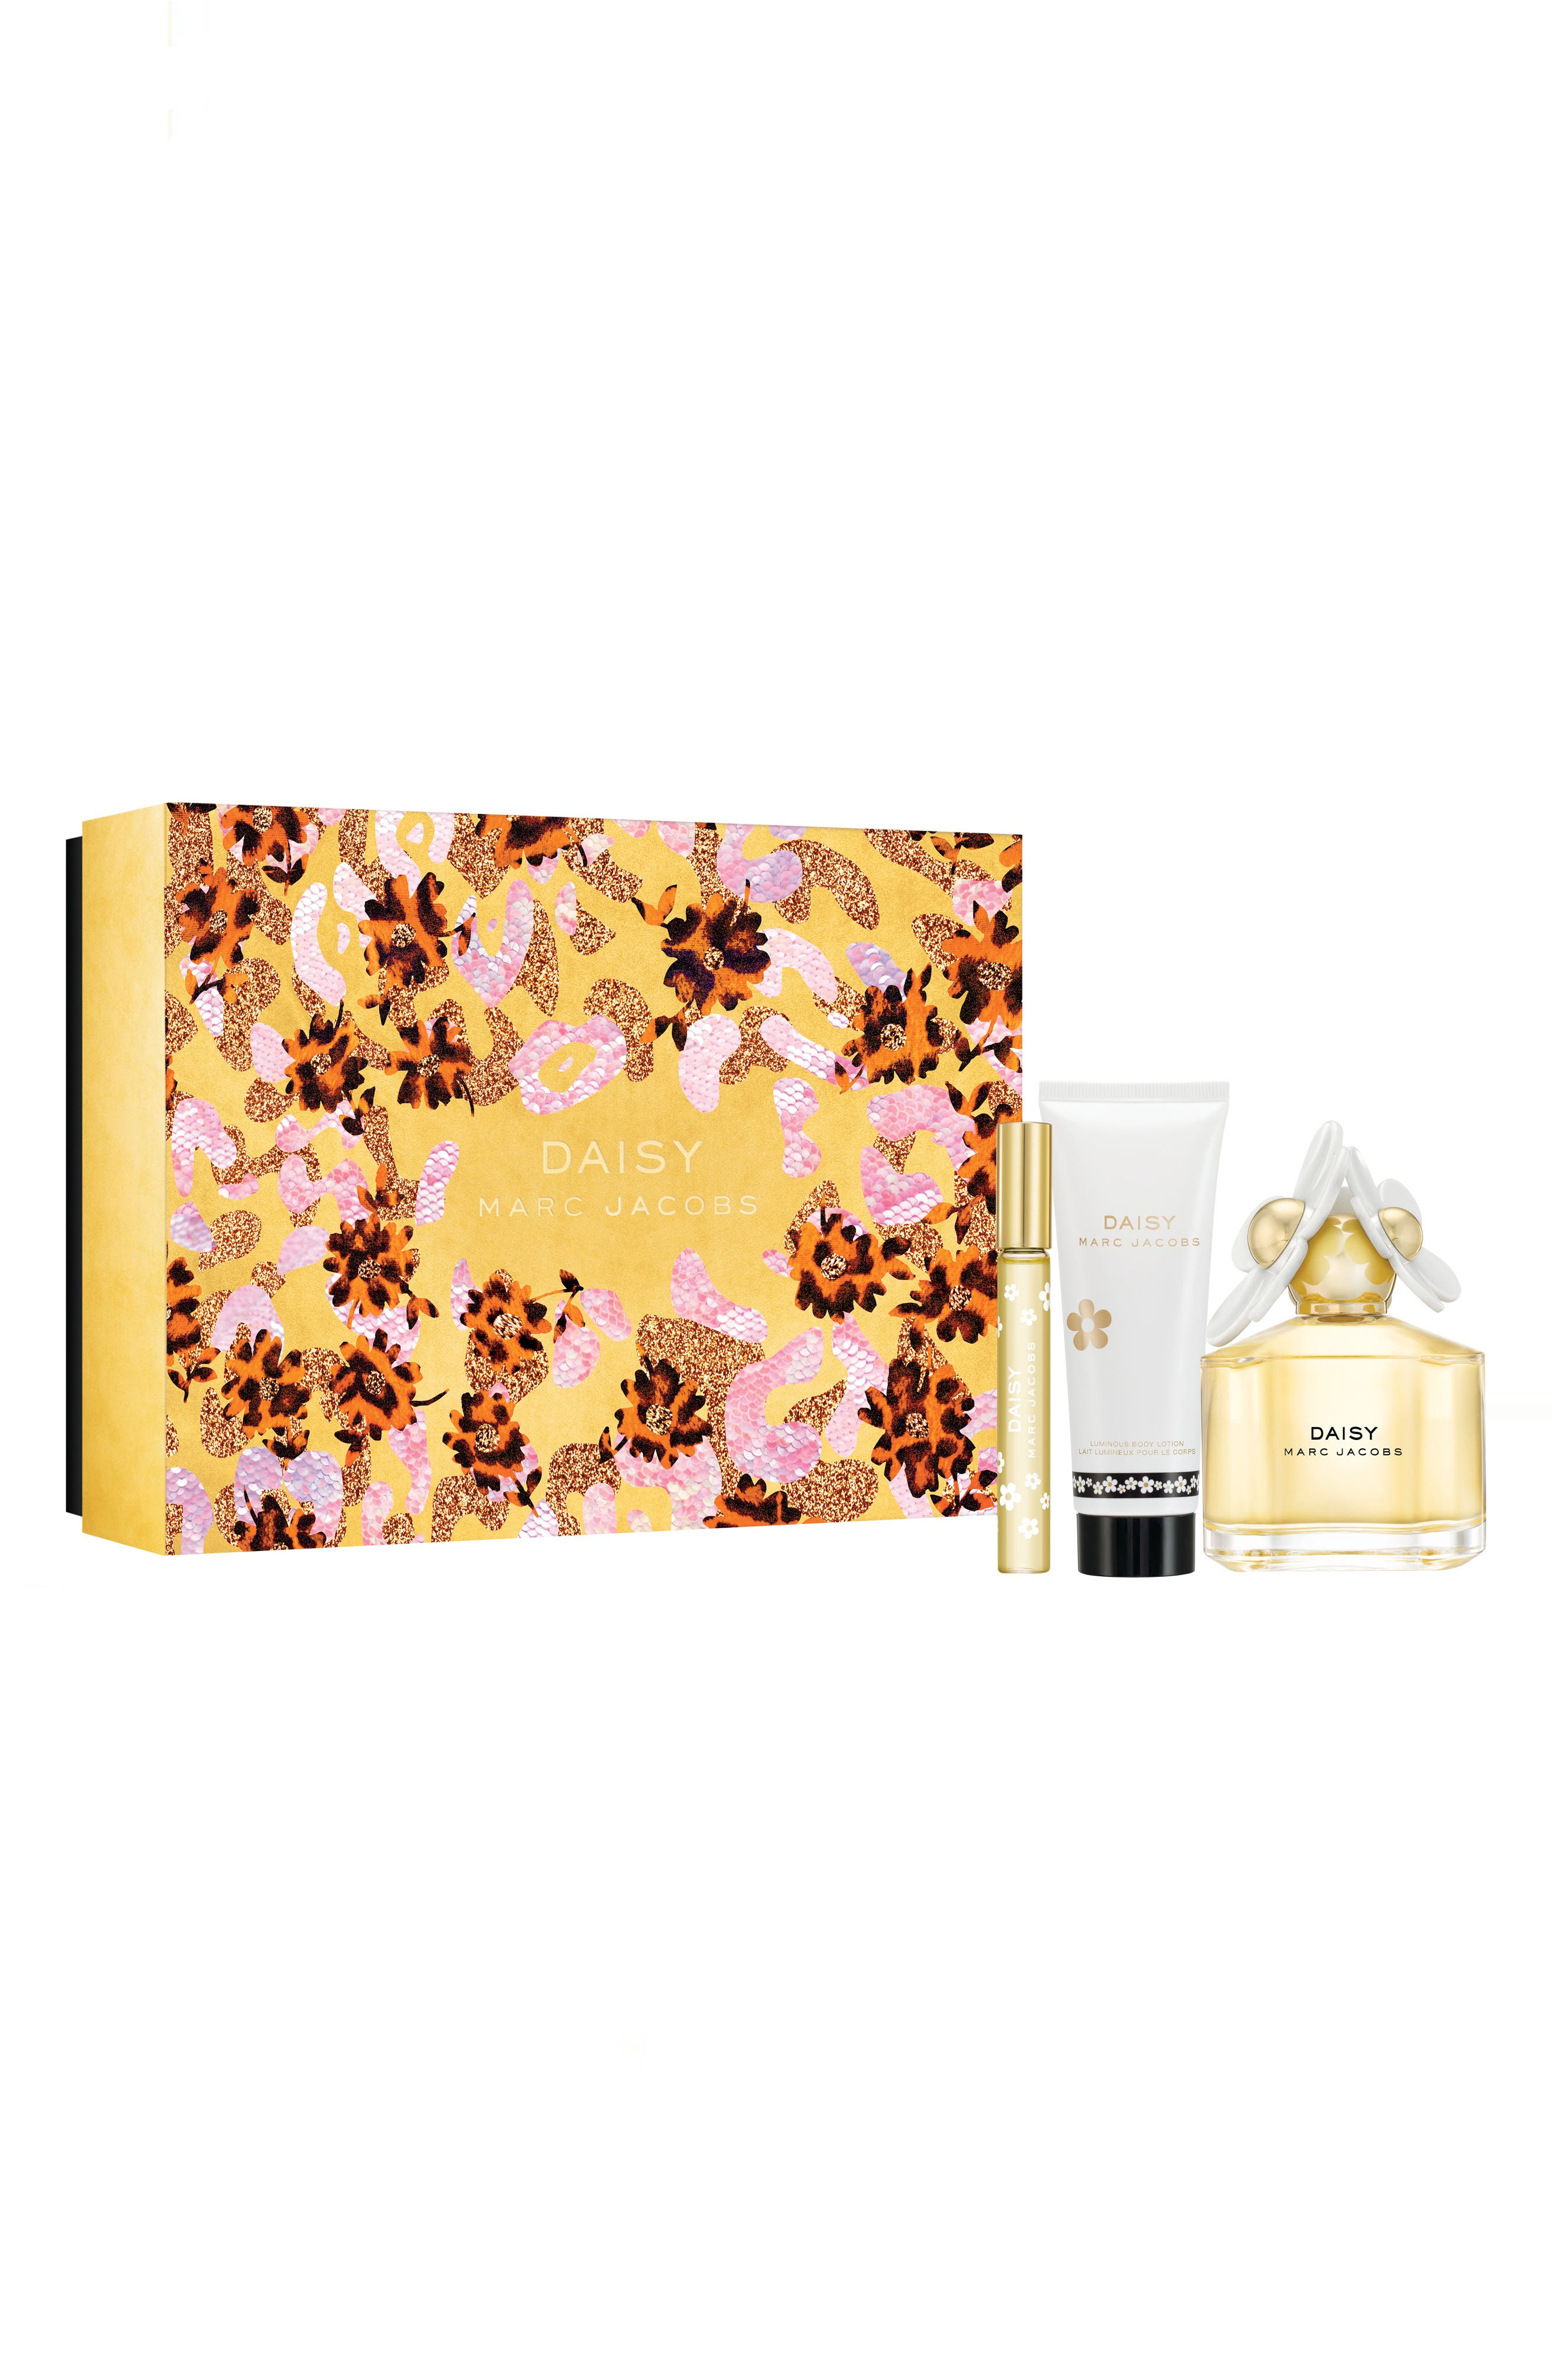 MARC JACOBS Daisy Three-Piece Set ($172 Value)